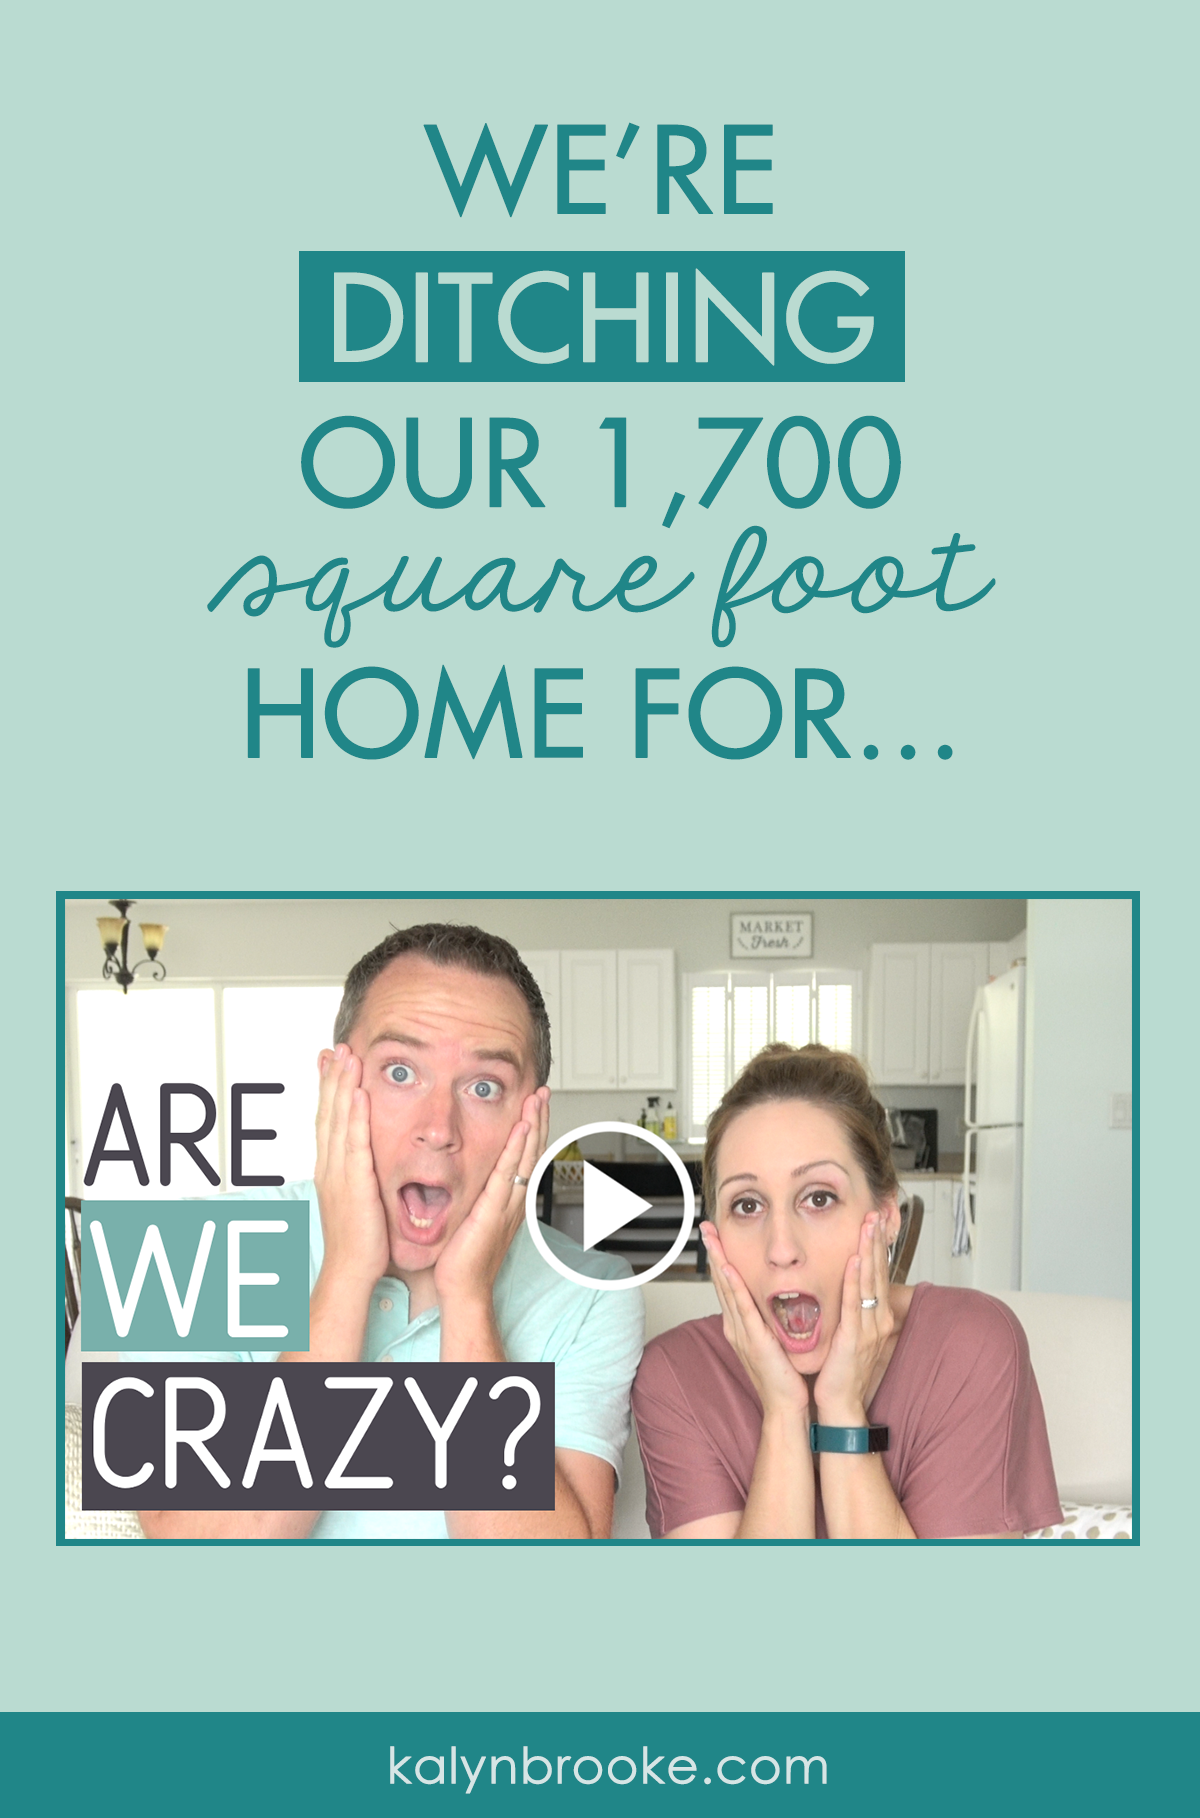 OH my! This woman and her husband are selling their house and going on the adventure of a lifetime! I've never heard of anything like it, but suddenly I'm thinking about my own bucket list and that one thing I've always wanted to do. Maybe, just maybe, I could do something risky but worth it, too! #downsizing #lifechange #adventure #bucketlist